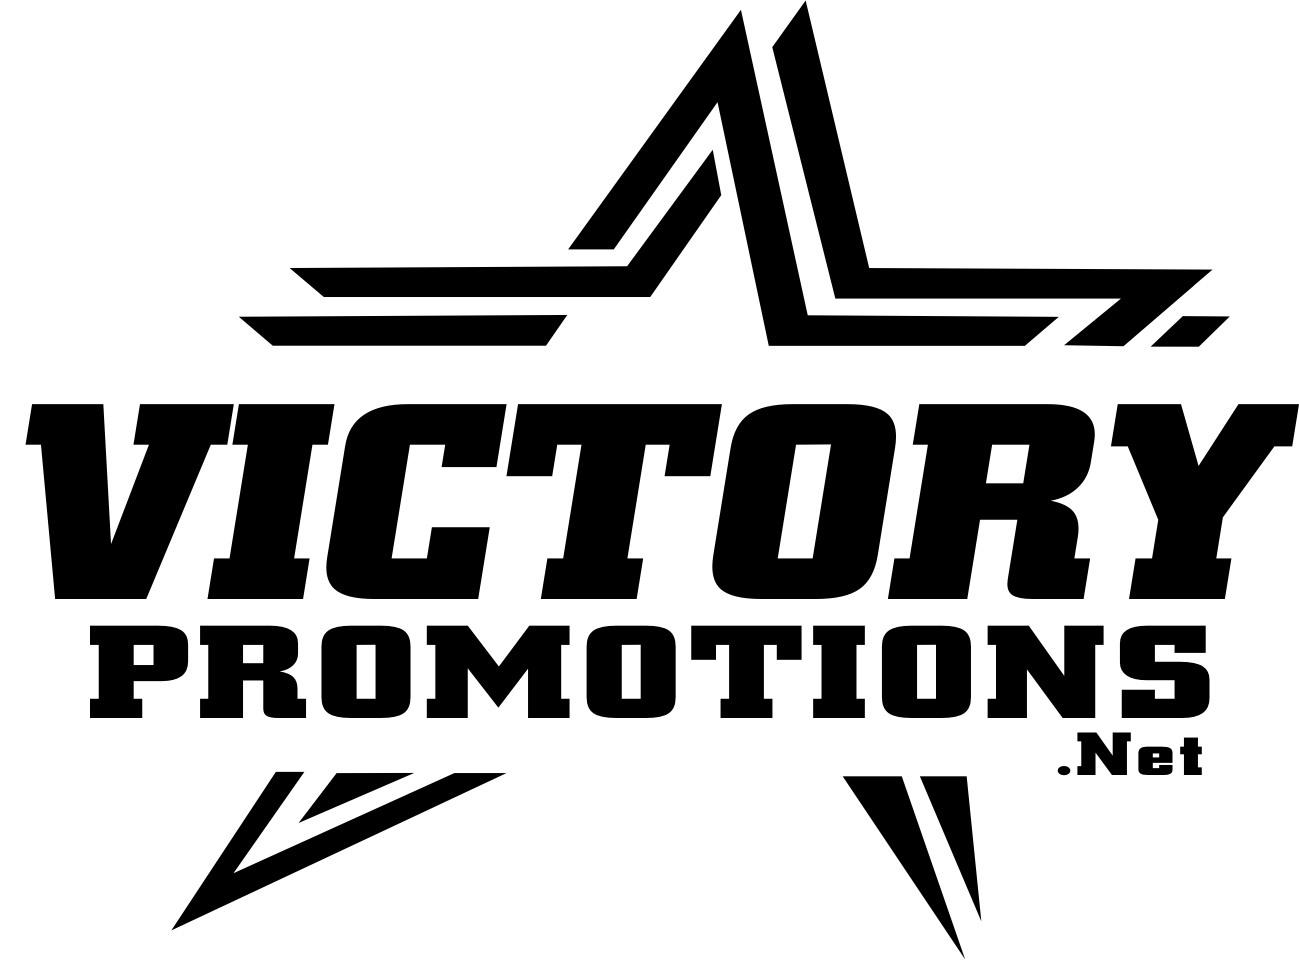 Victory Promotions.jpg